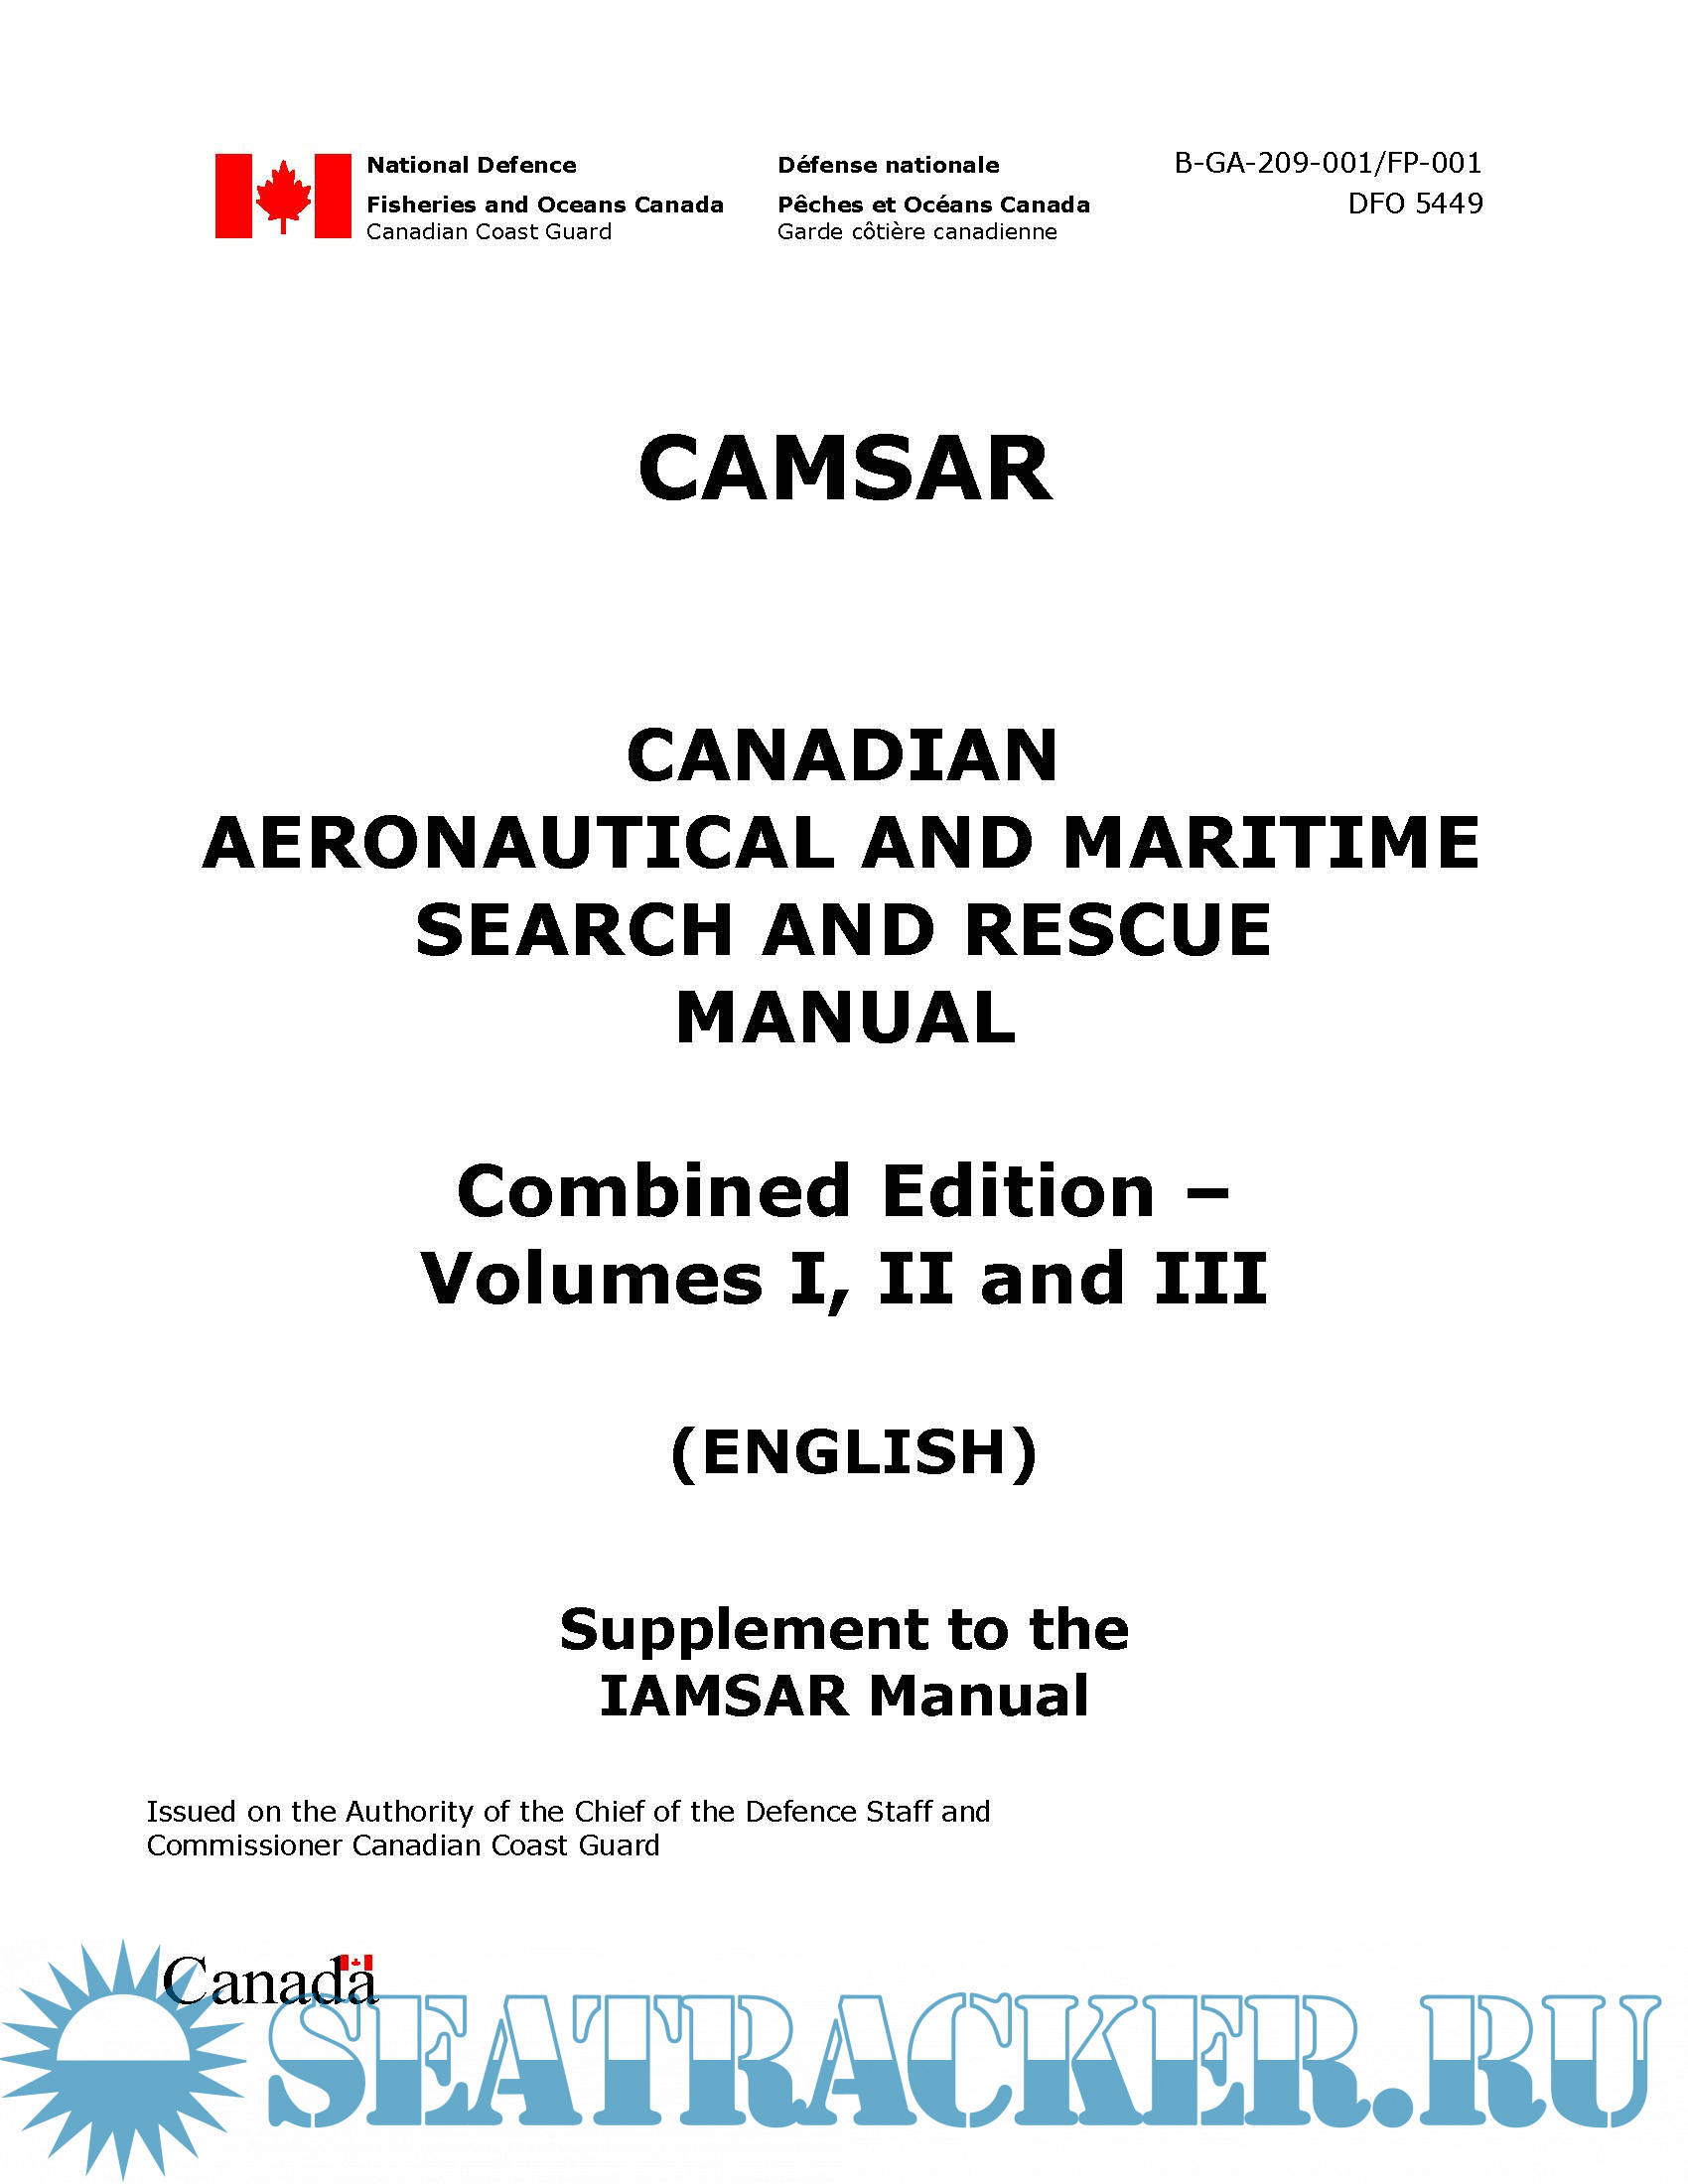 Canadian Aeronautical and Maritime Search and Rescue (CAMSAR